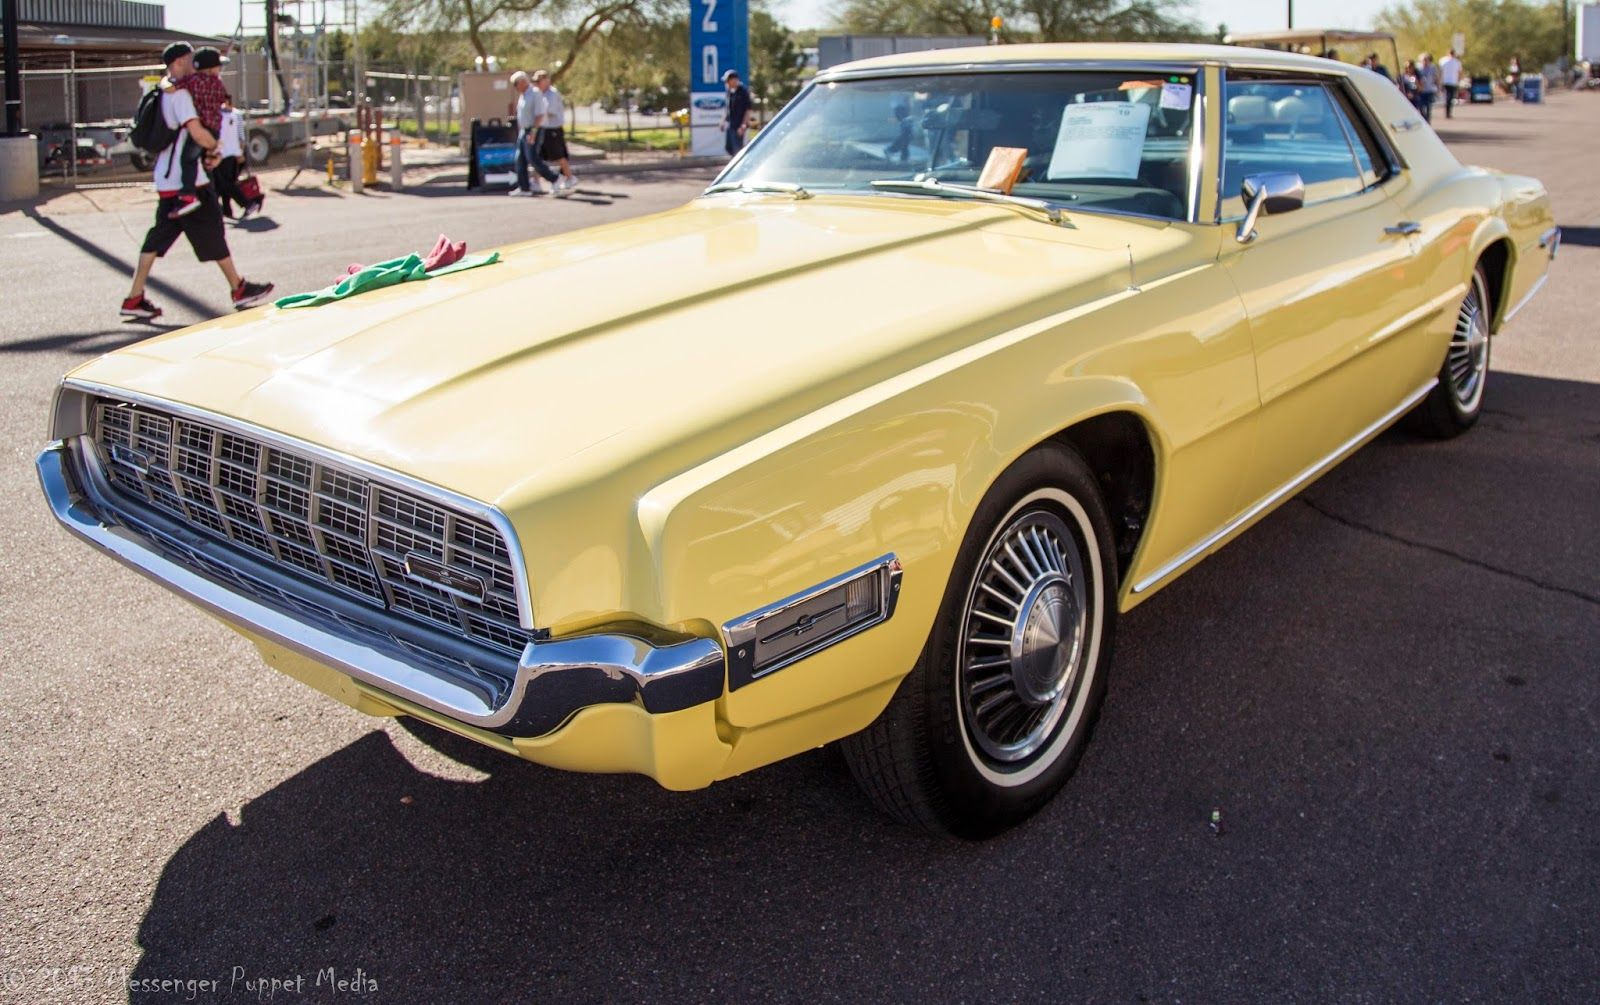 Ford thunderbird 1967 picture 2 of 2 front angle image - Ford Thunderbird 1968 My Dad S Was Avocado Green With A White Landau Top Down Memory Lane Pinterest Ford Thunderbird Ford And Cars